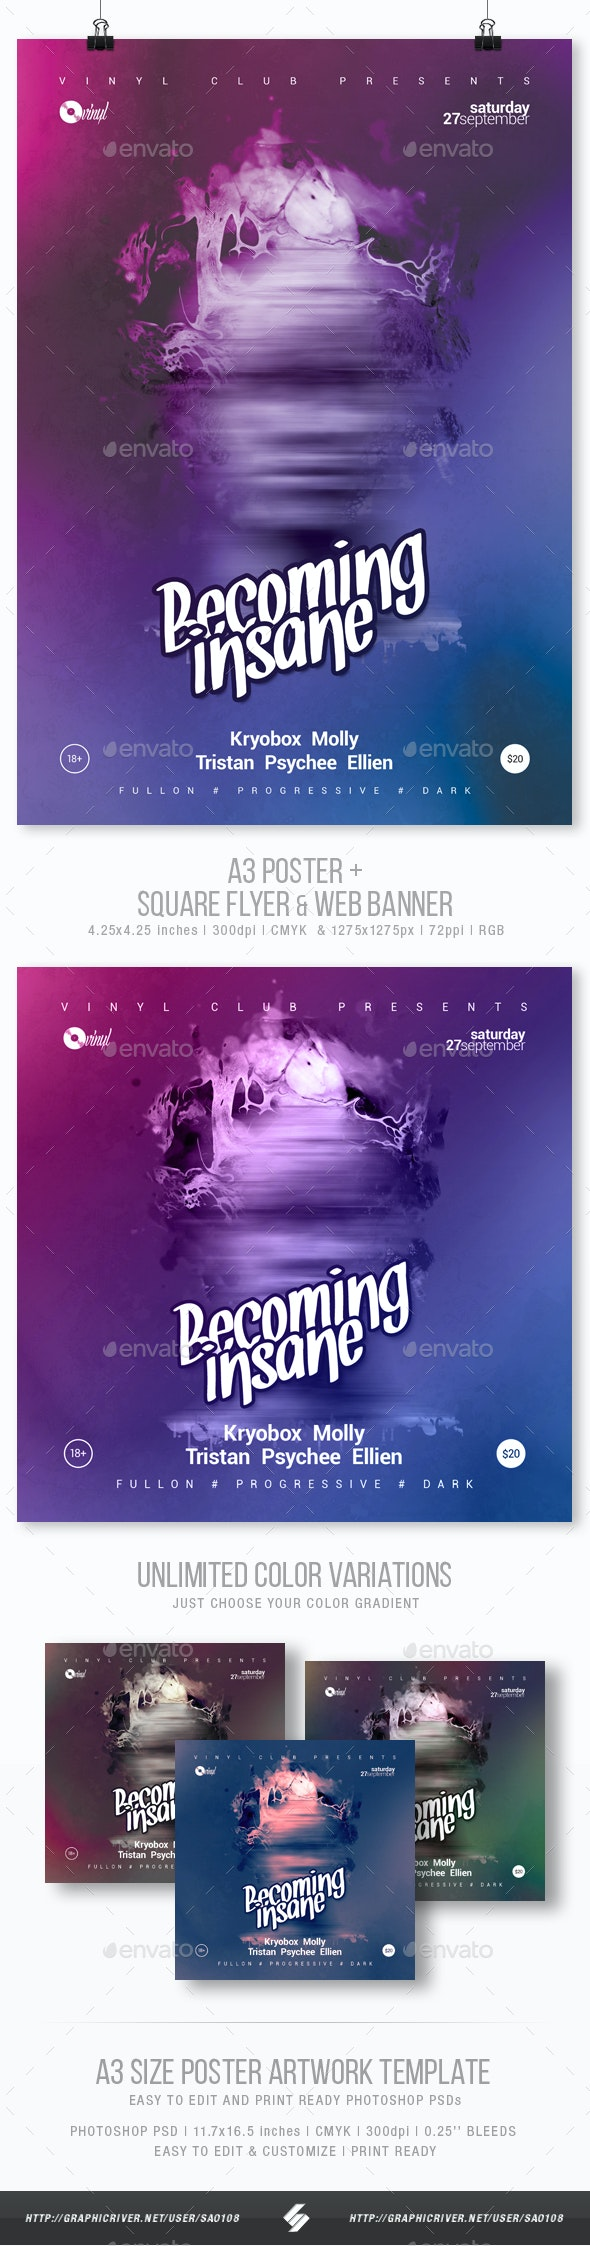 Becoming Insane - Progressive Party Flyer / Poster Template A3 - Clubs & Parties Events